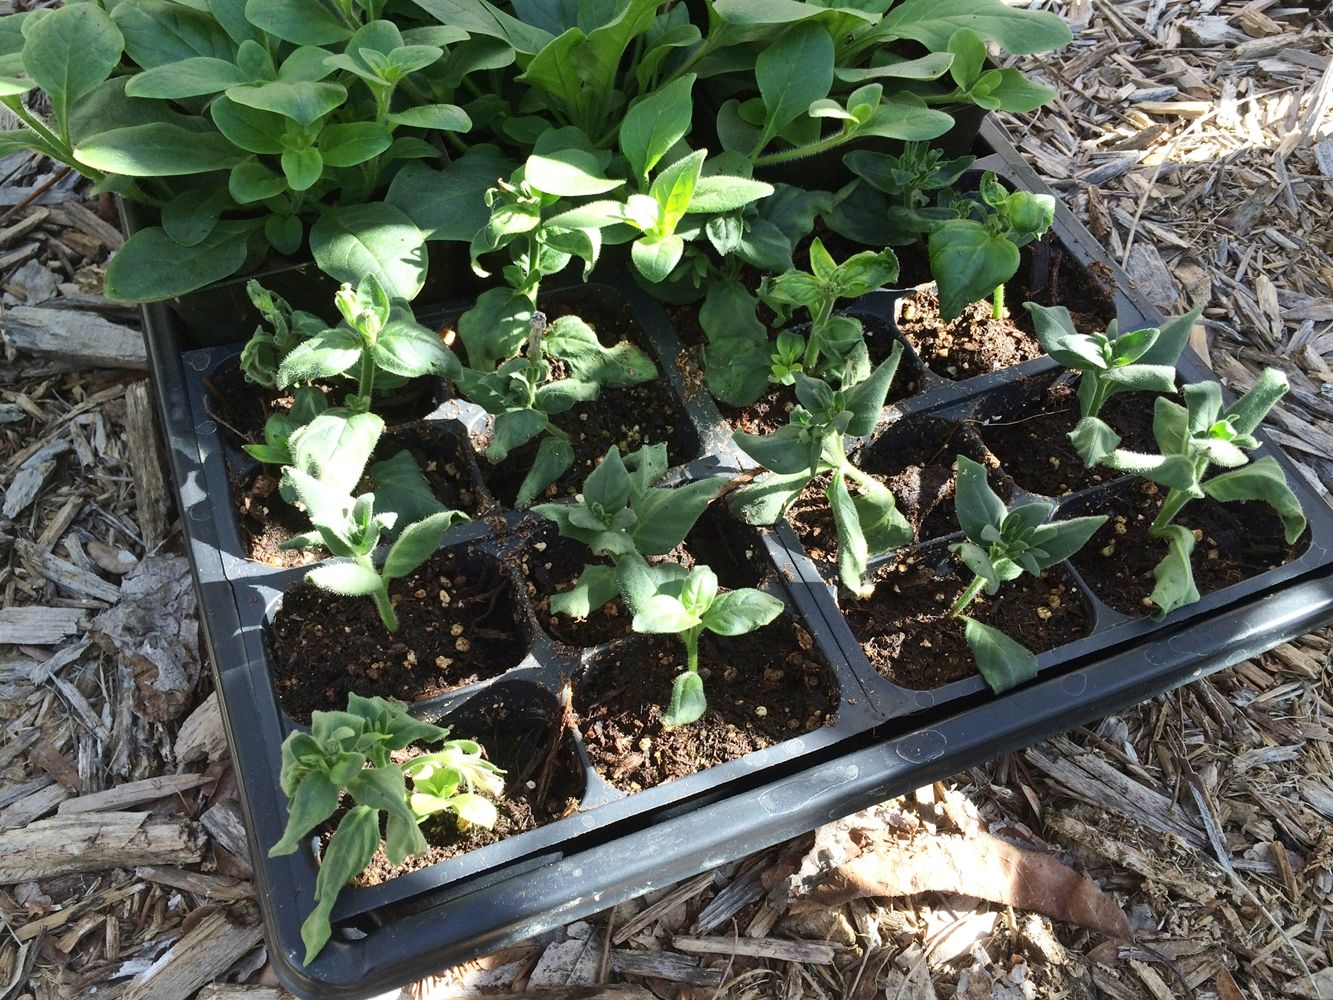 DIY Flower Bed Starts - ready